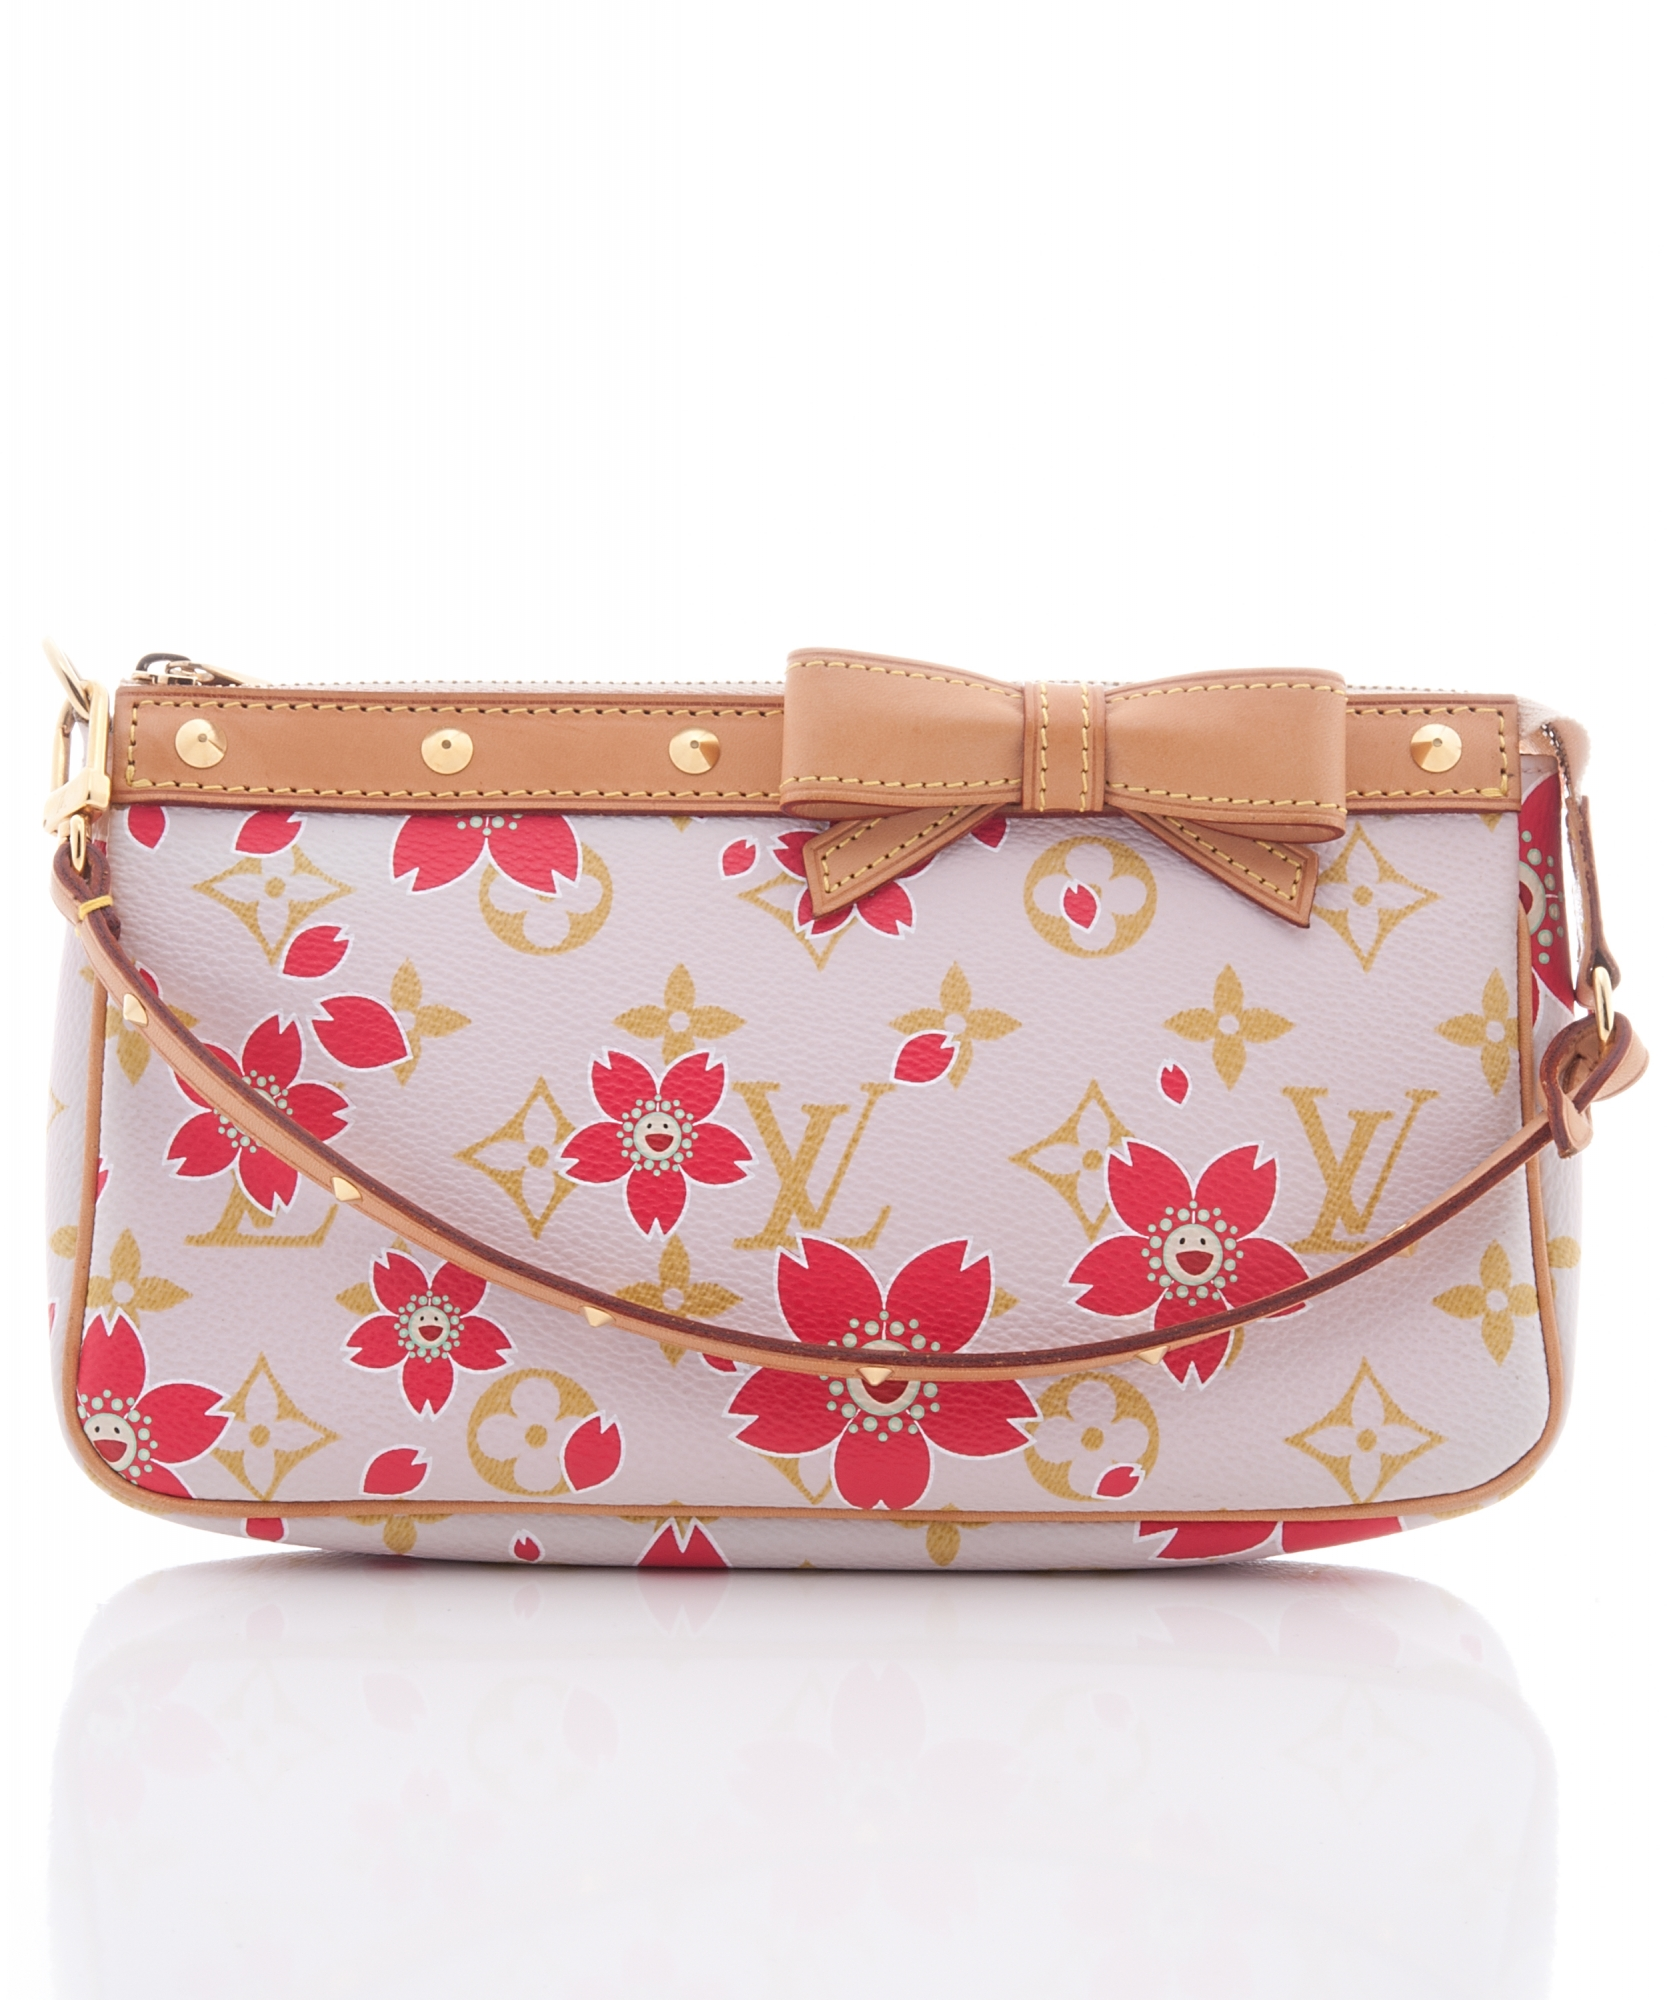 4e829902c08 Louis Vuitton Pochette Handbag, Limited Edition in Pink Monogram Cherry  Blossom